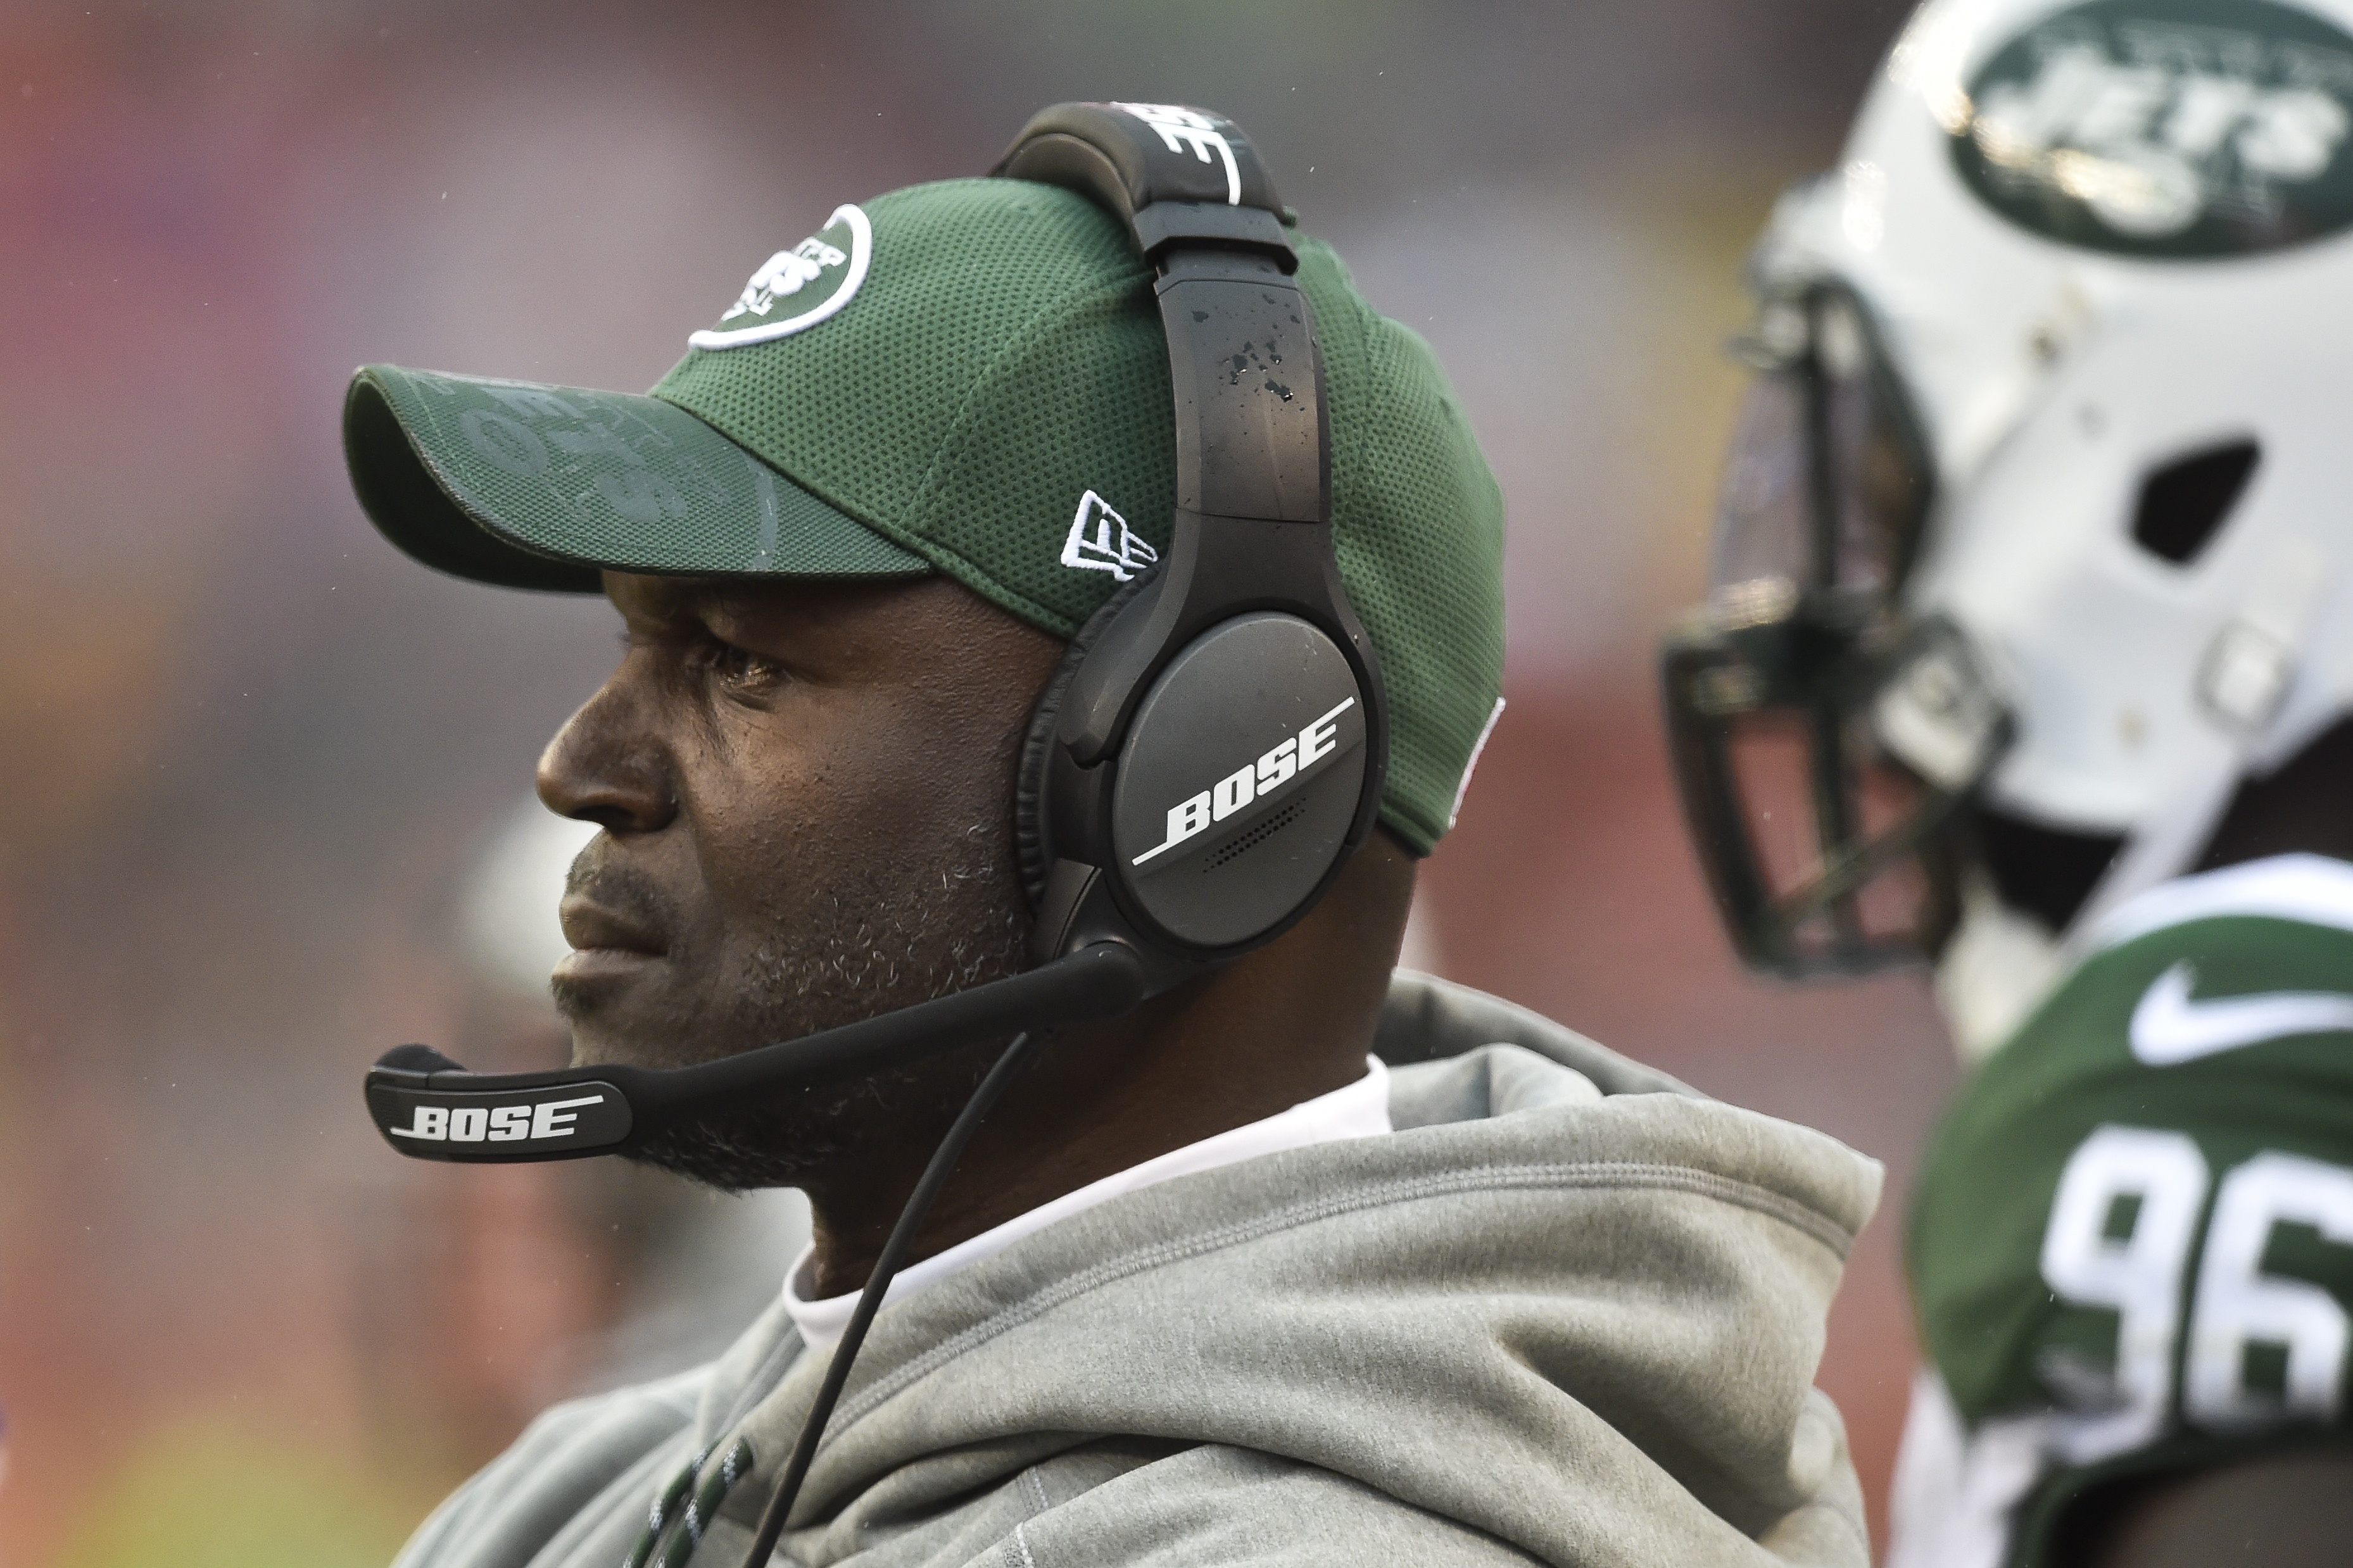 New York Jets head coach Todd Bowles works the sideline in the first half of an NFL football game against the Cleveland Browns, Sunday, Oct. 30, 2016, in Cleveland. (AP Photo/David Richard)